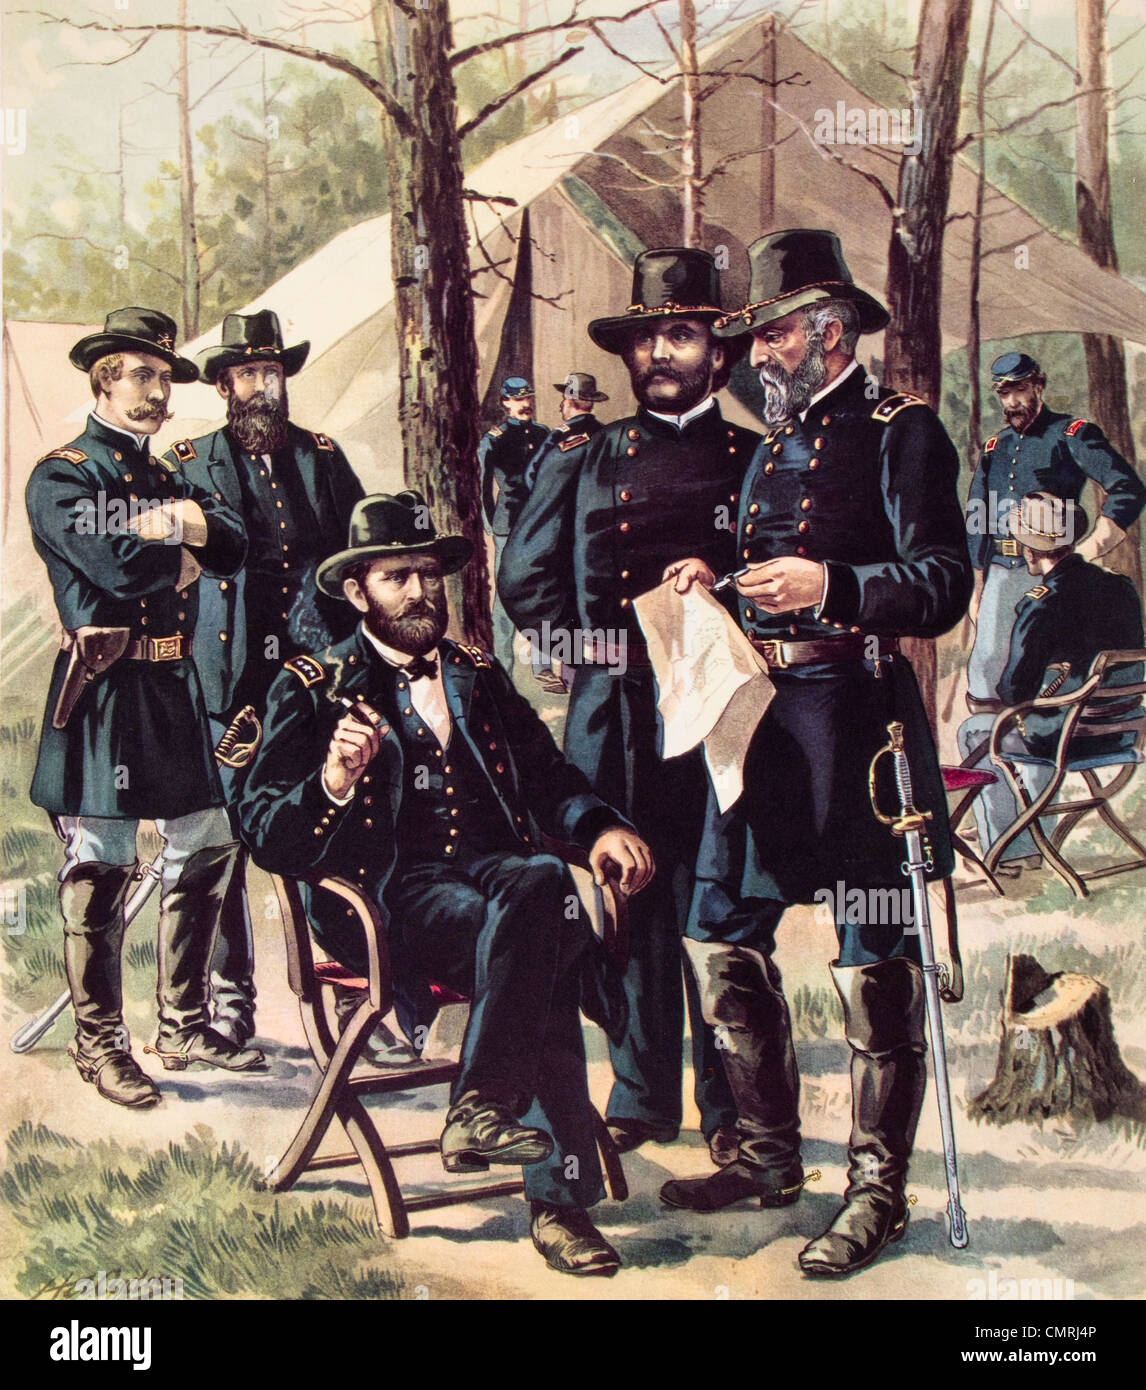 1860s 1864 american civil war general ulysses grant seated in 1860s 1864 american civil war general ulysses grant seated in front of tent with his line and field officers staff publicscrutiny Images